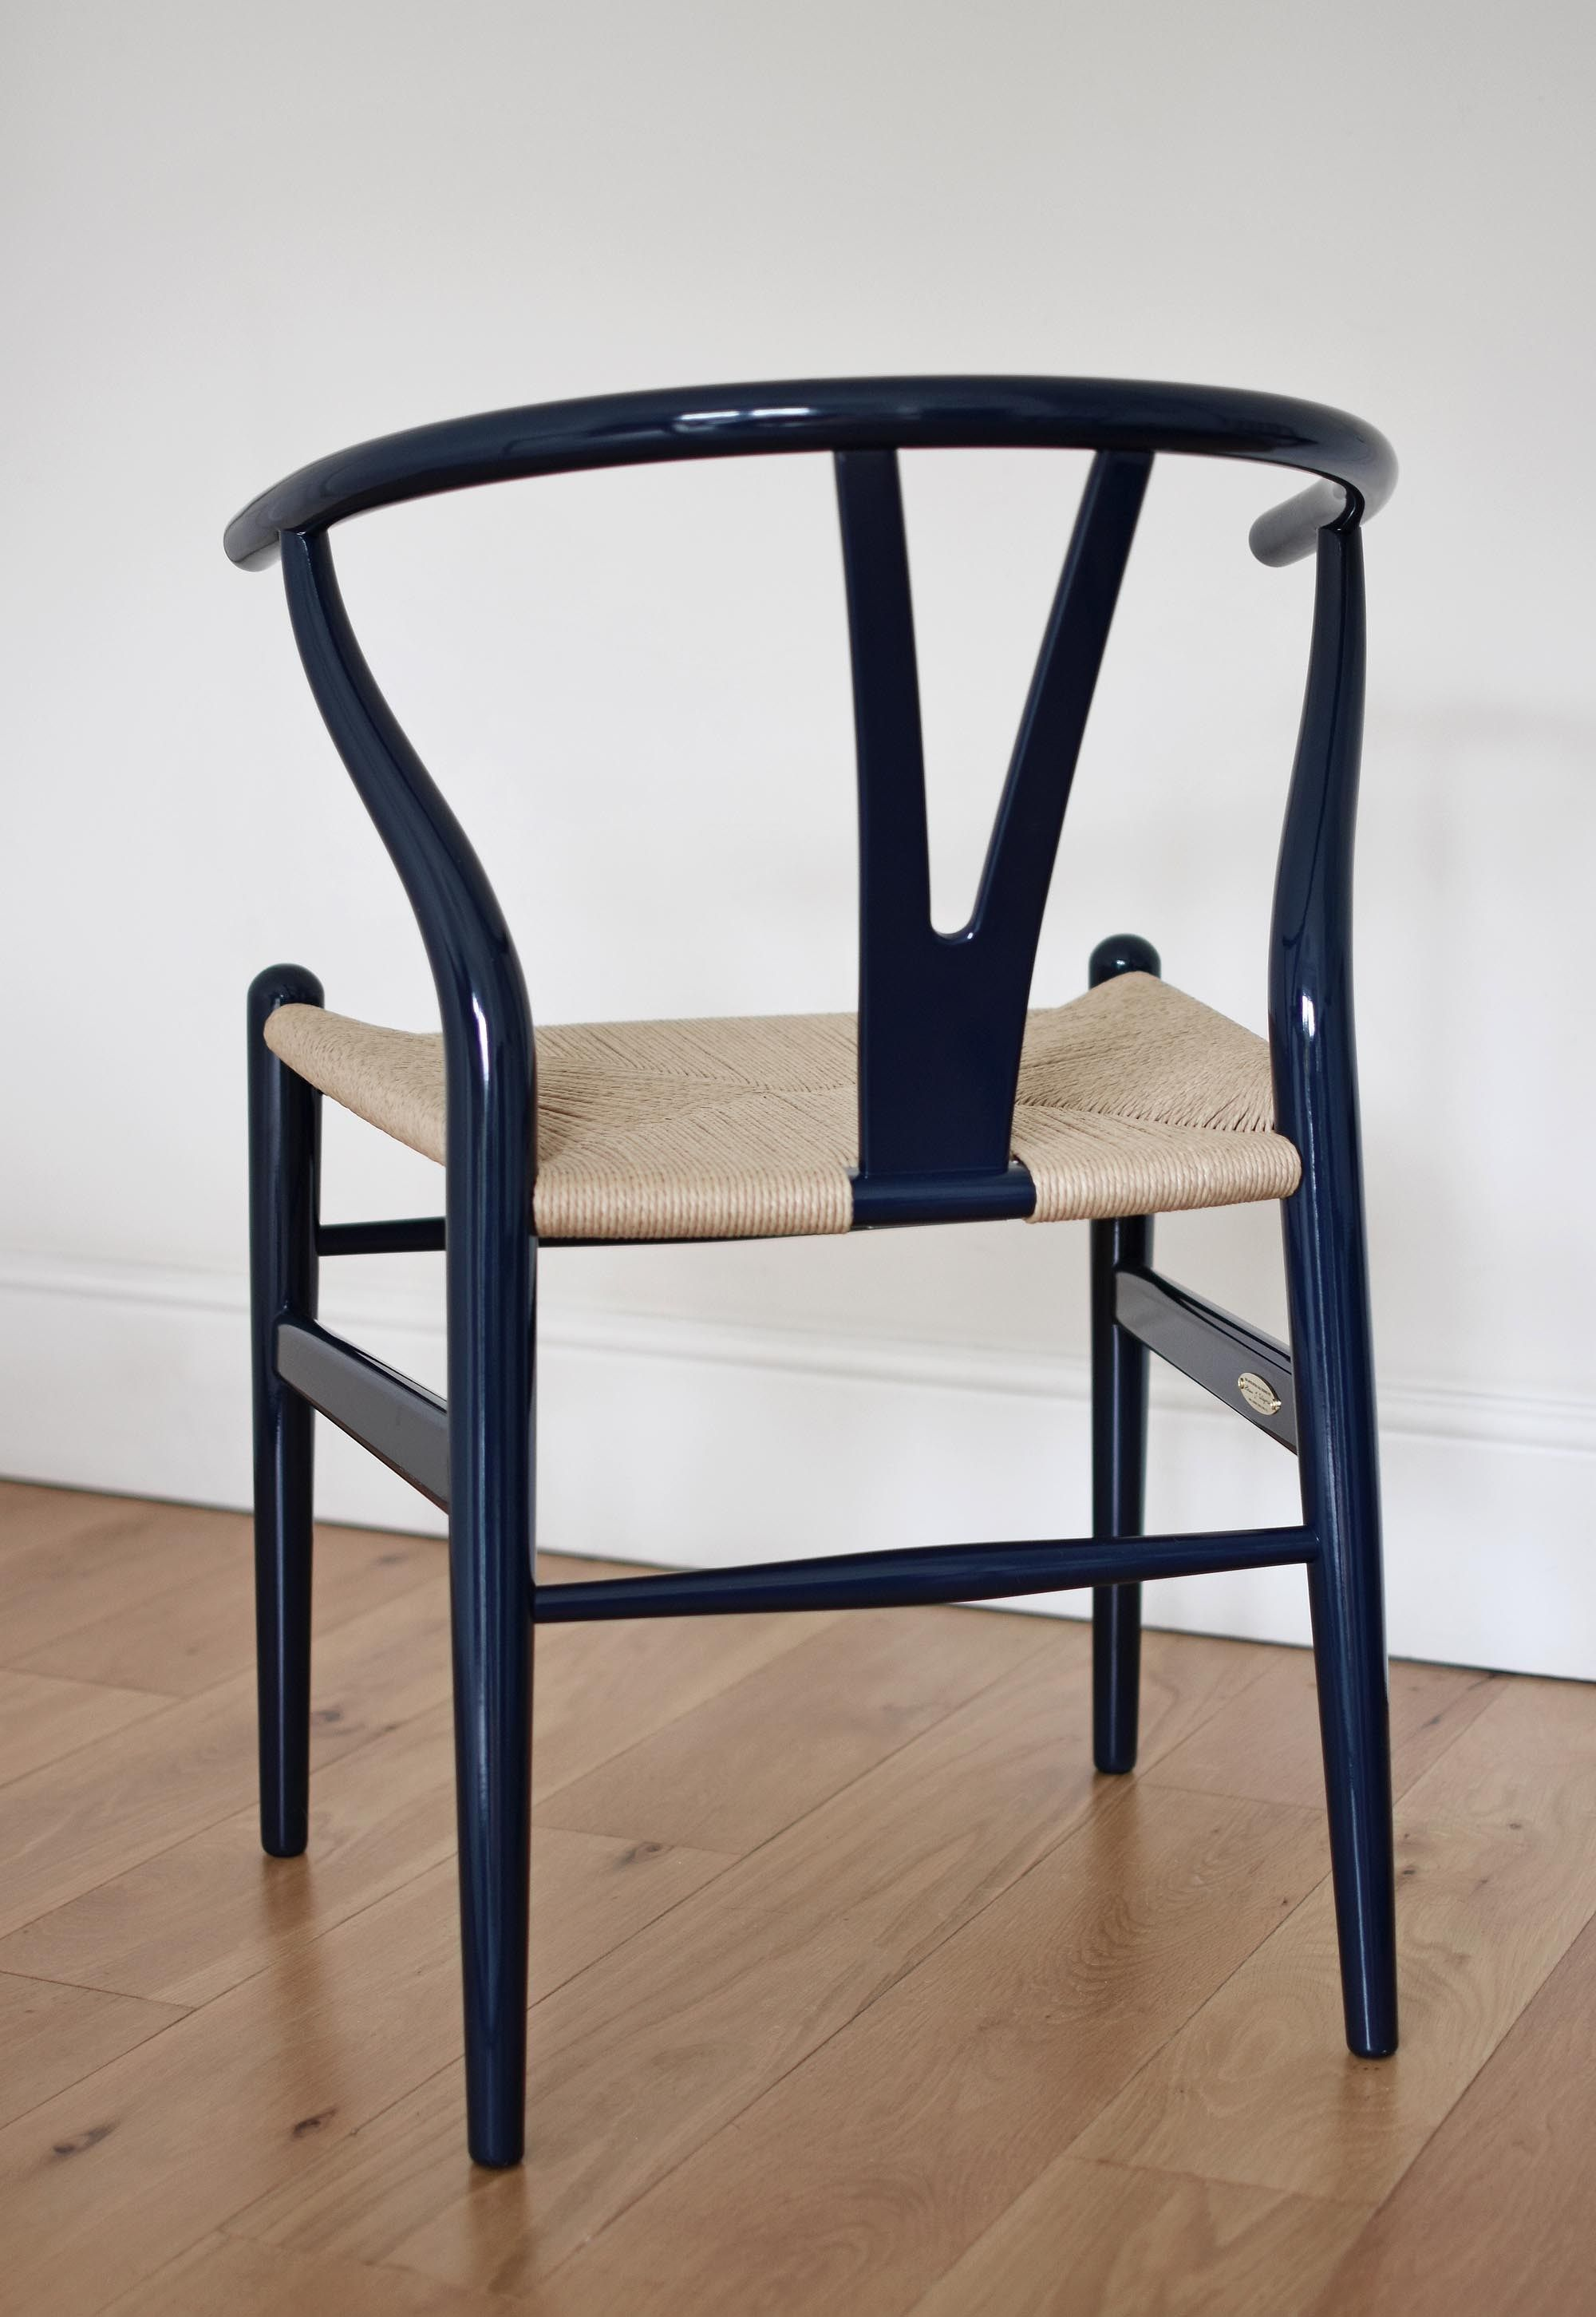 The iconic CH24 'Wishbone' chair turns navy blue These